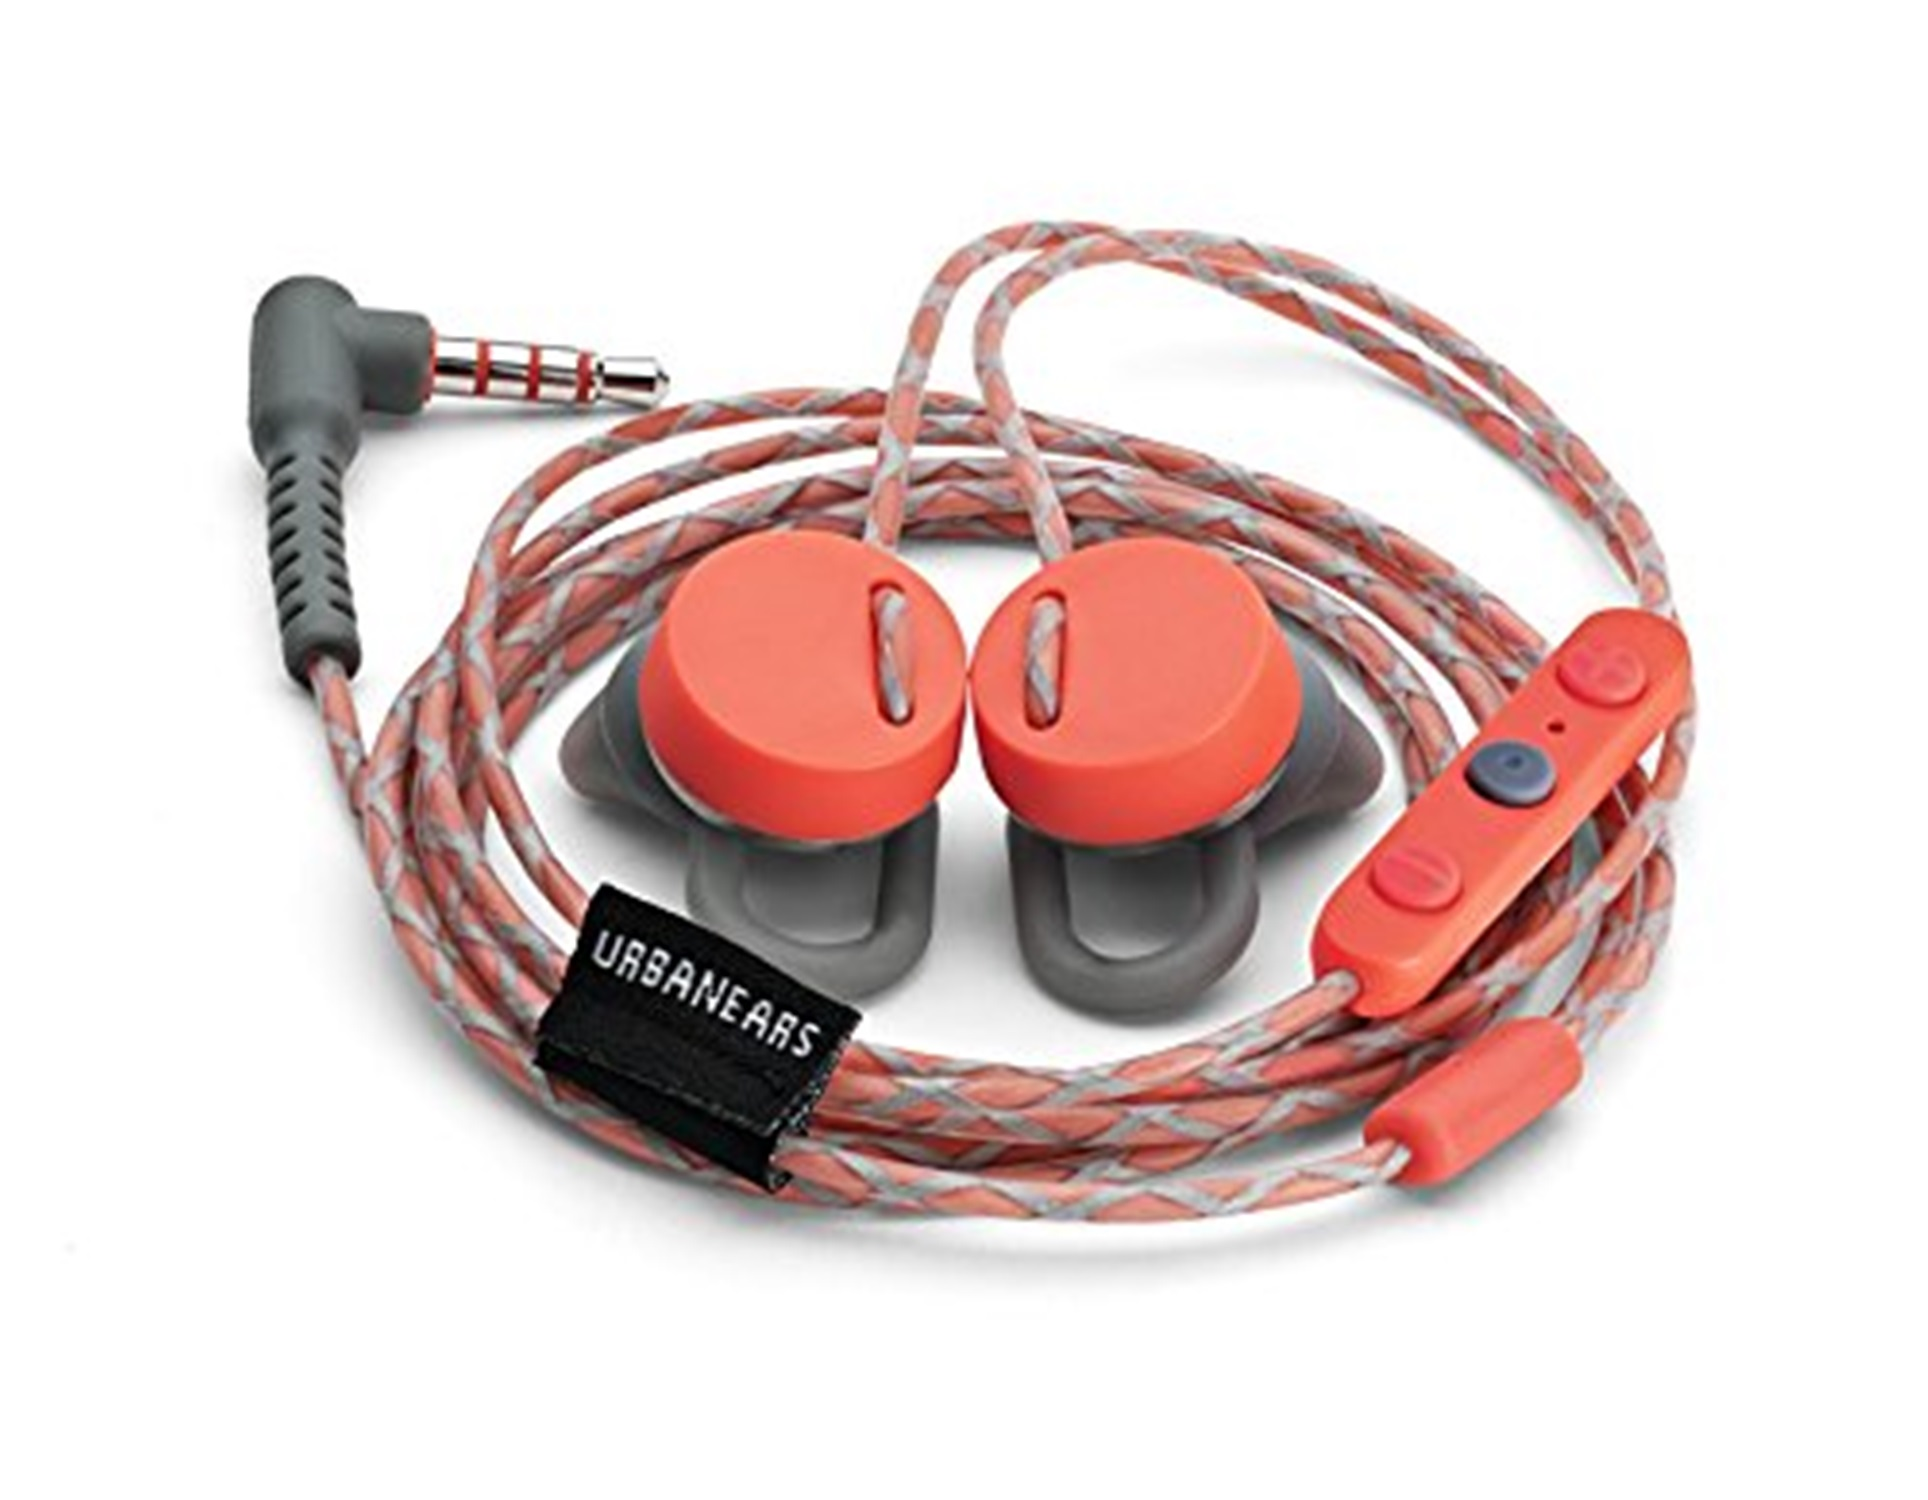 URBANEARS - ACCESSORI AUDIO - 7340055315753